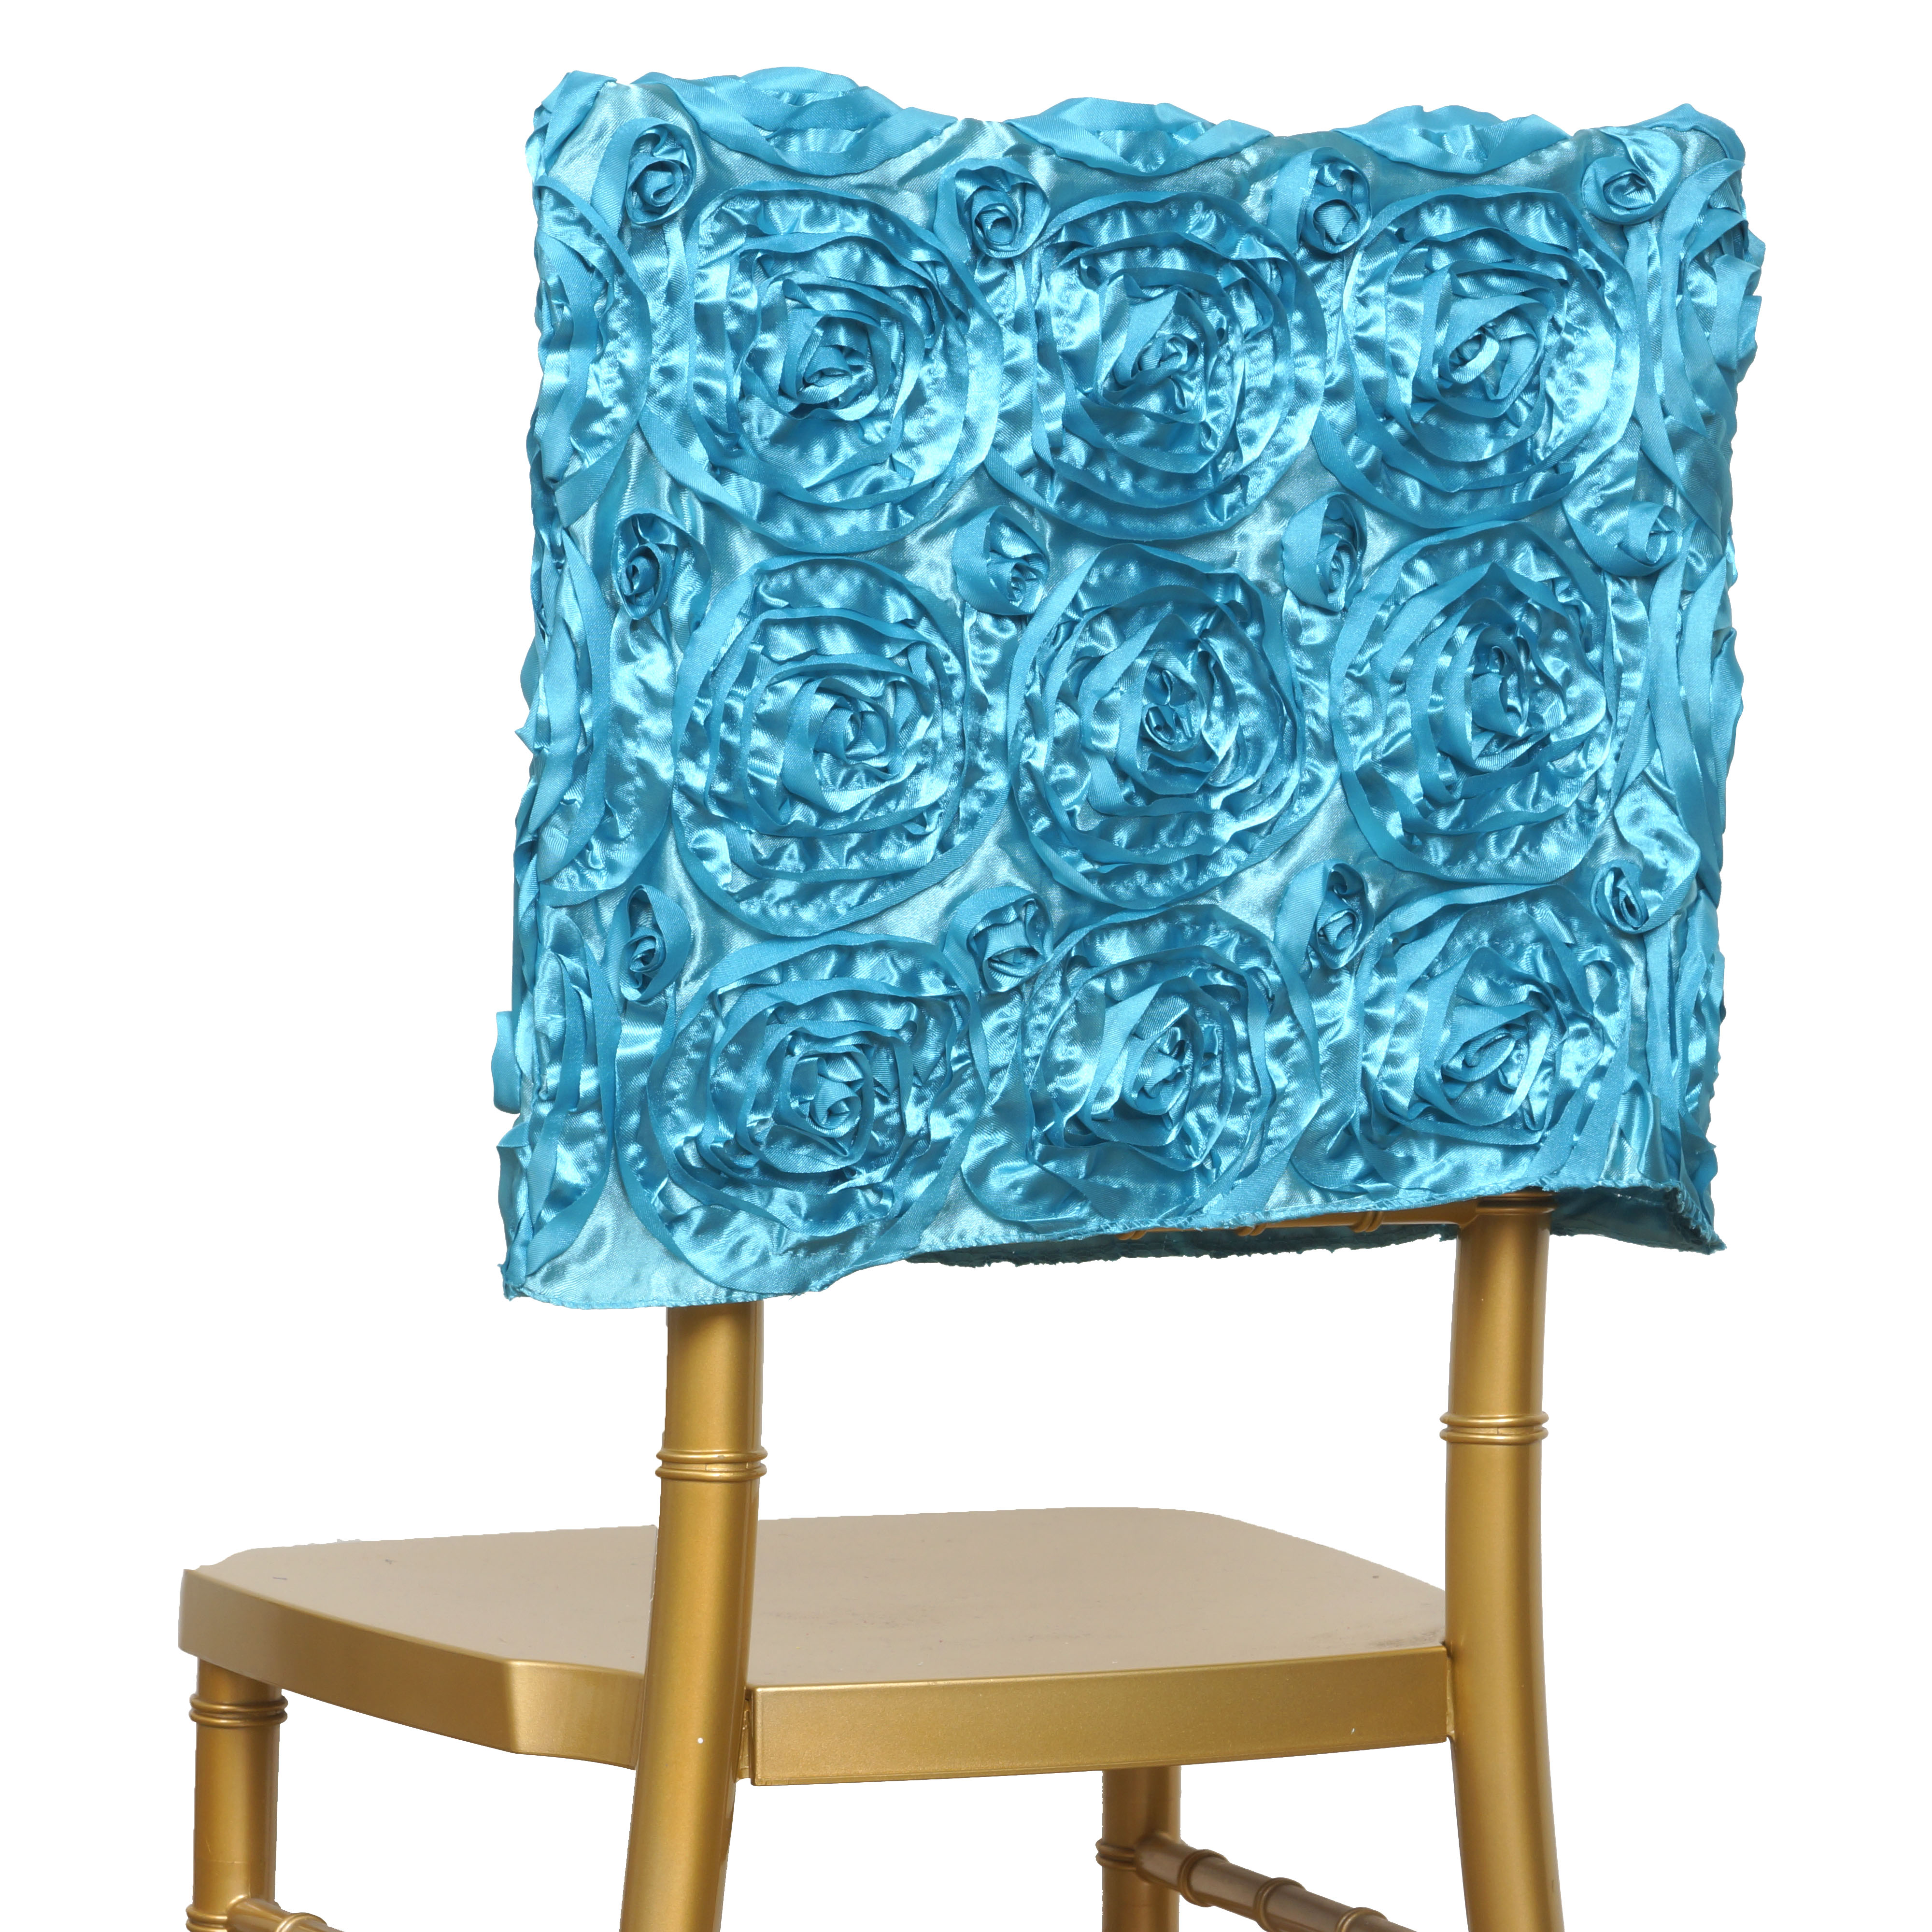 Fabulous Details About Raised Roses Square Top Chair Cap Covers Wedding Reception Party Supply Sale Pdpeps Interior Chair Design Pdpepsorg